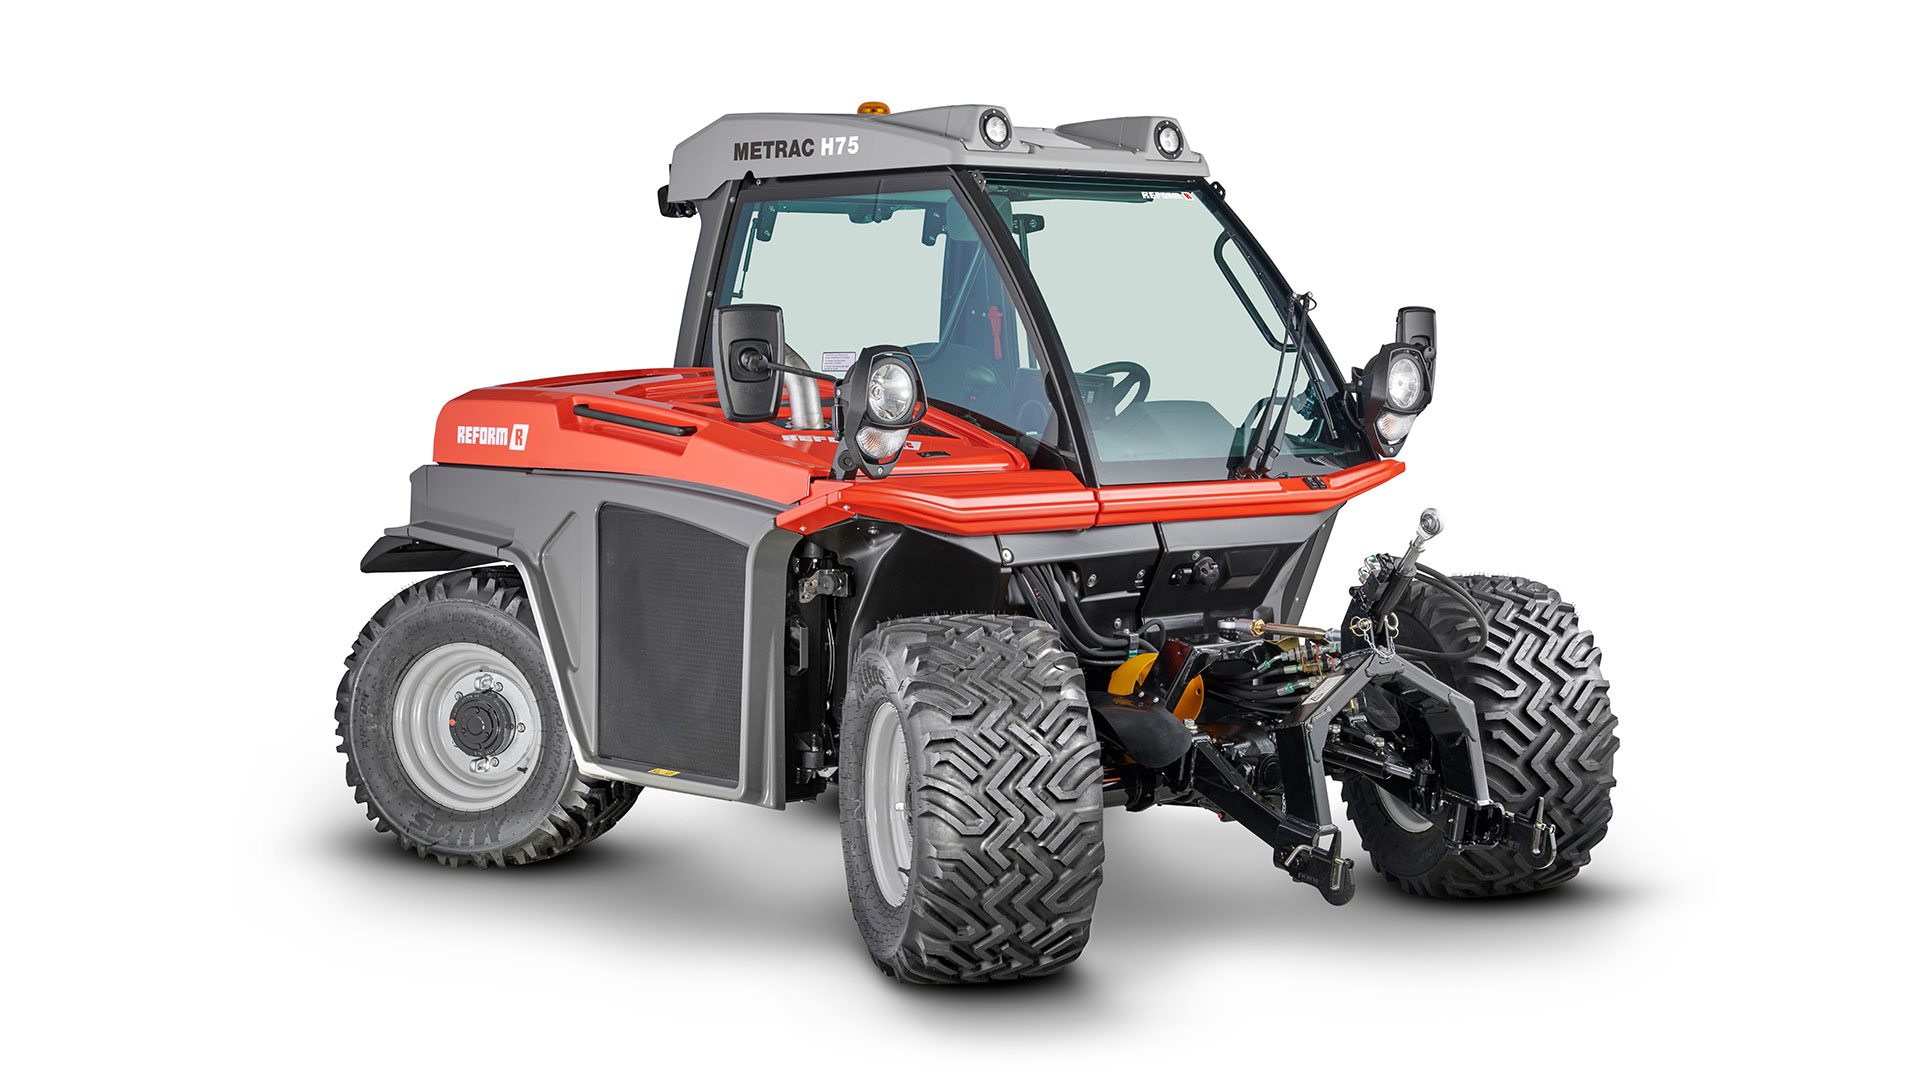 Meet the new Metrac H75 from REFORM